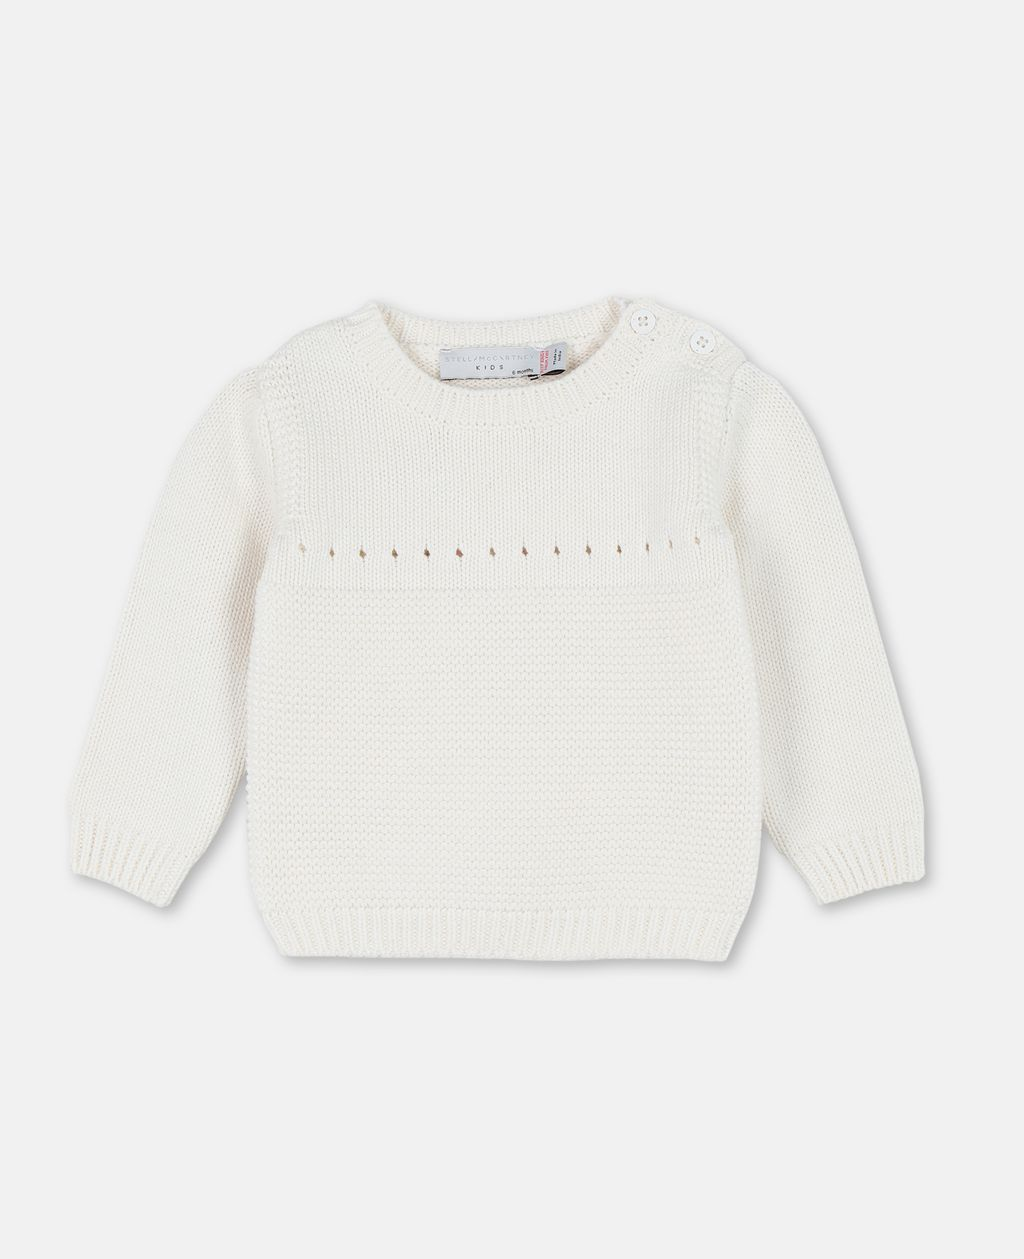 571480 / 9232 IVORY / STELLA MCCARTNEY BUNNY JUMPER